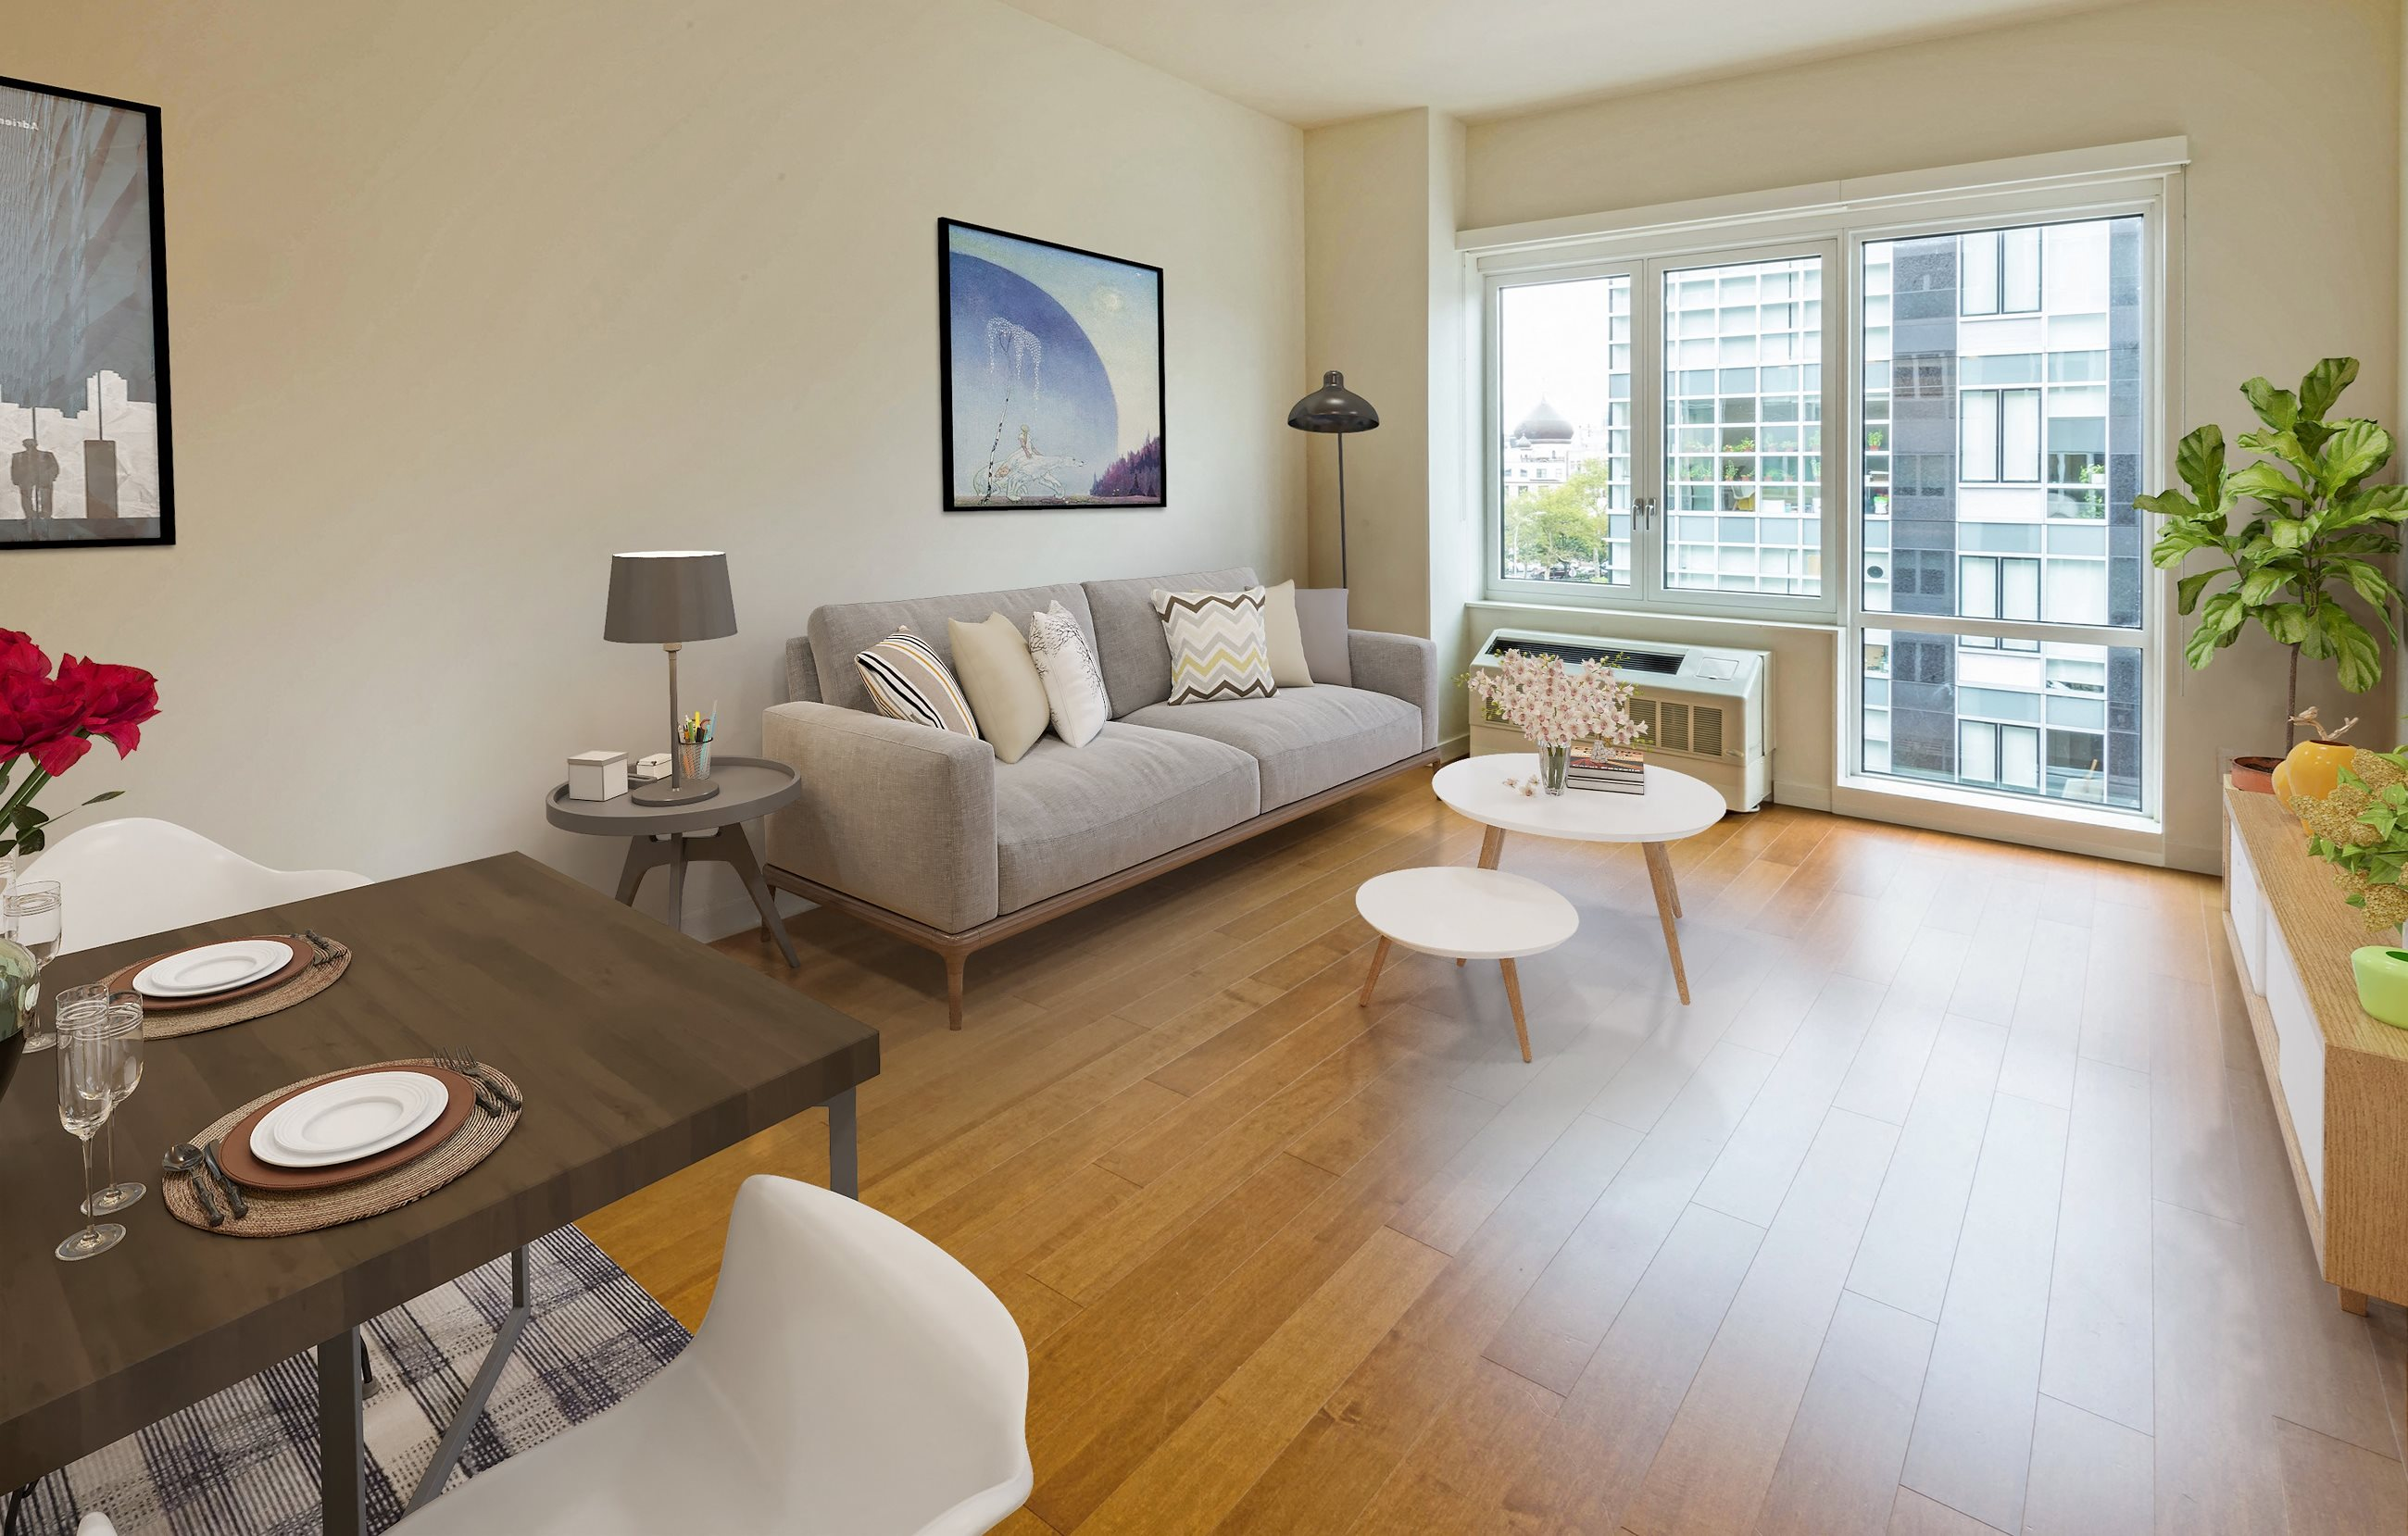 544 union luxury apartments for rent in williamsburg - 1 bedroom apartments williamsburg brooklyn ...